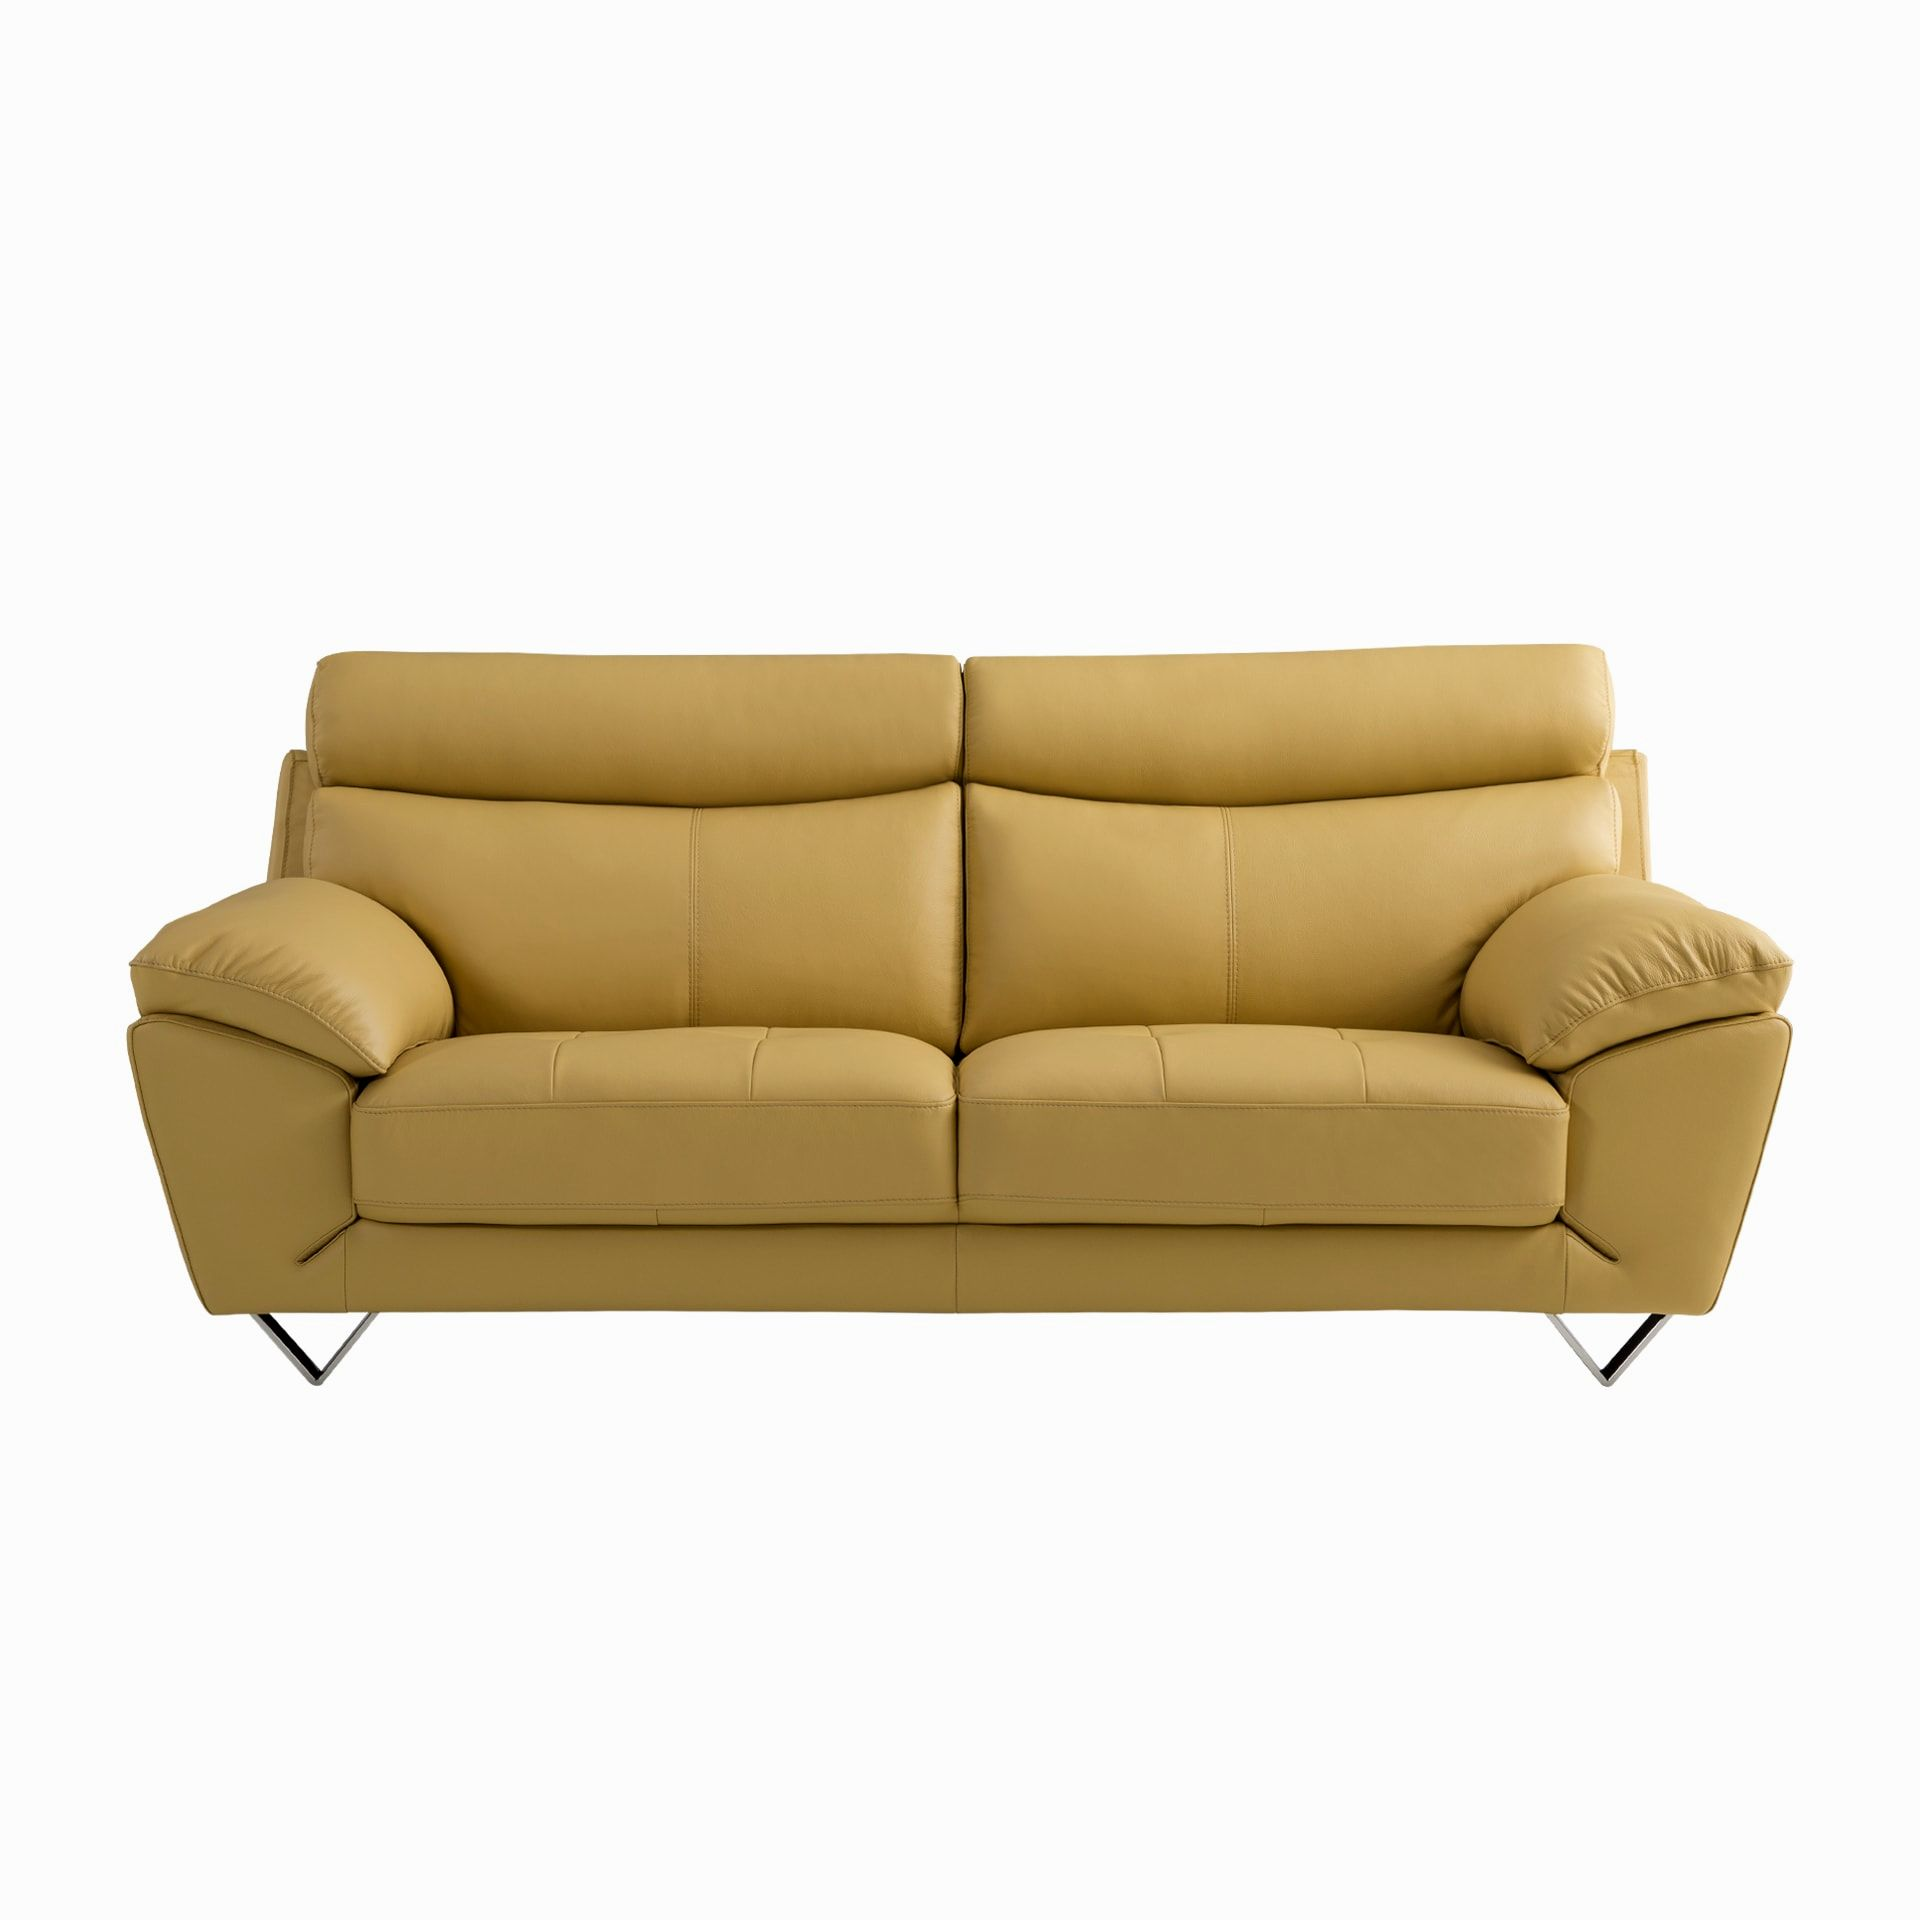 top sofas at macy's collection-Fresh sofas at Macy's Plan